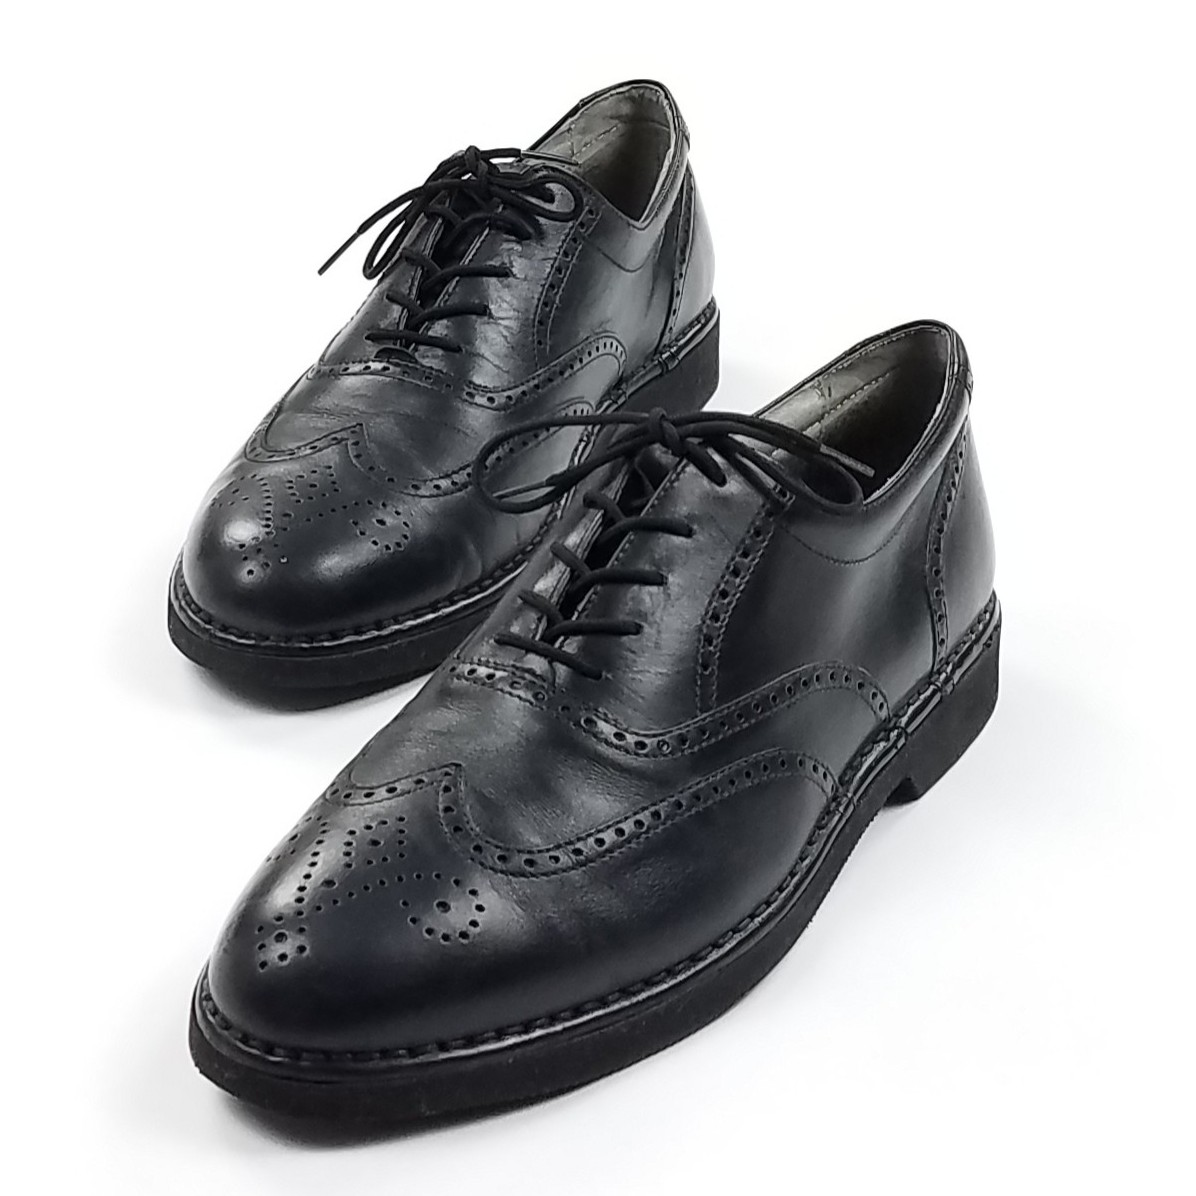 Product Image 1 - Brand: DresSports by Rockport (Vintage